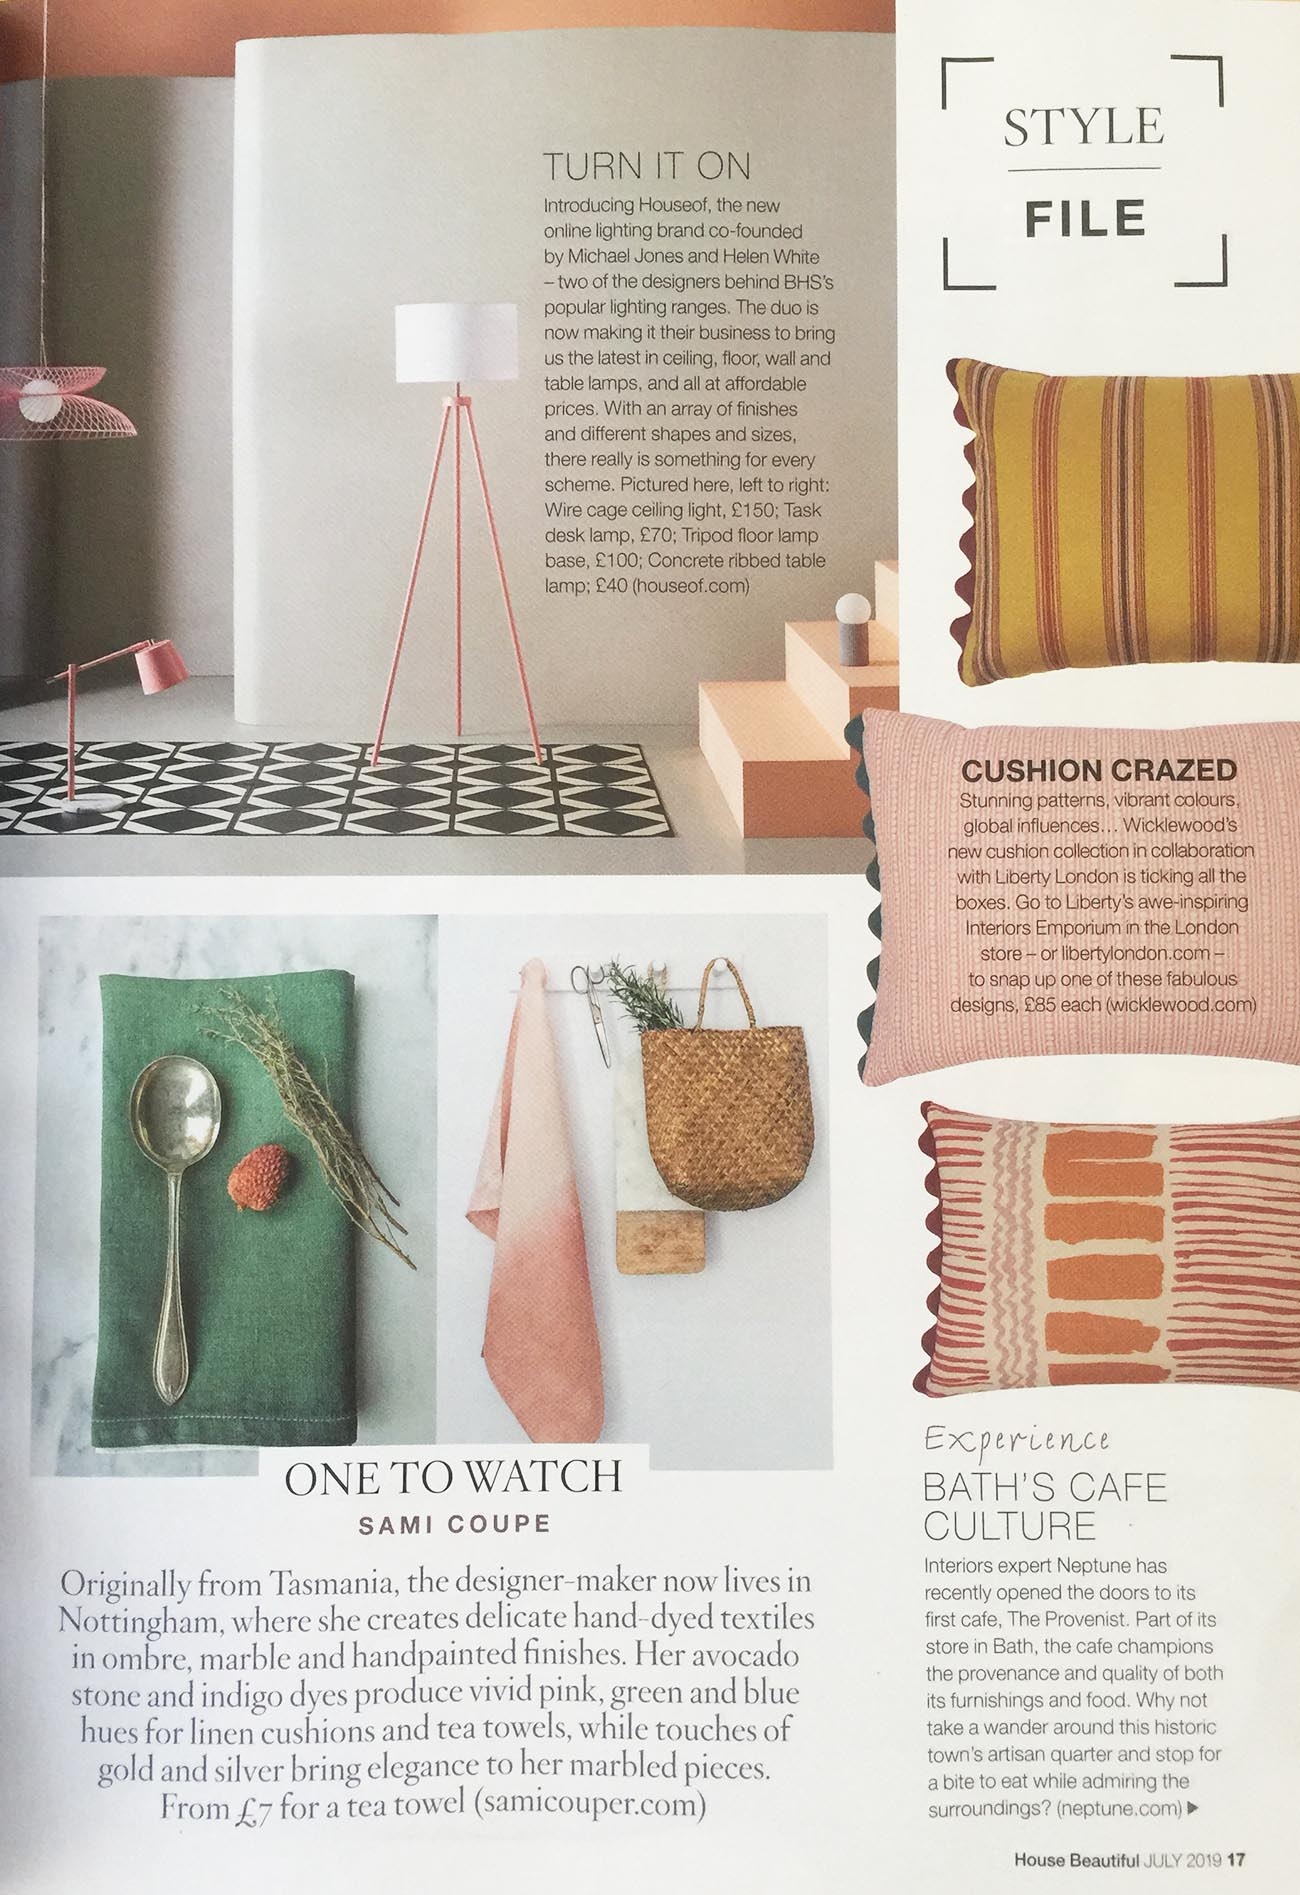 Wicklewood's spring cushions at Liberty featured in House Beautiful July 2019 Issue 'Style File' feature, featuring the Wicklewood pink, Saltaire orange and Canfield yellow cushions